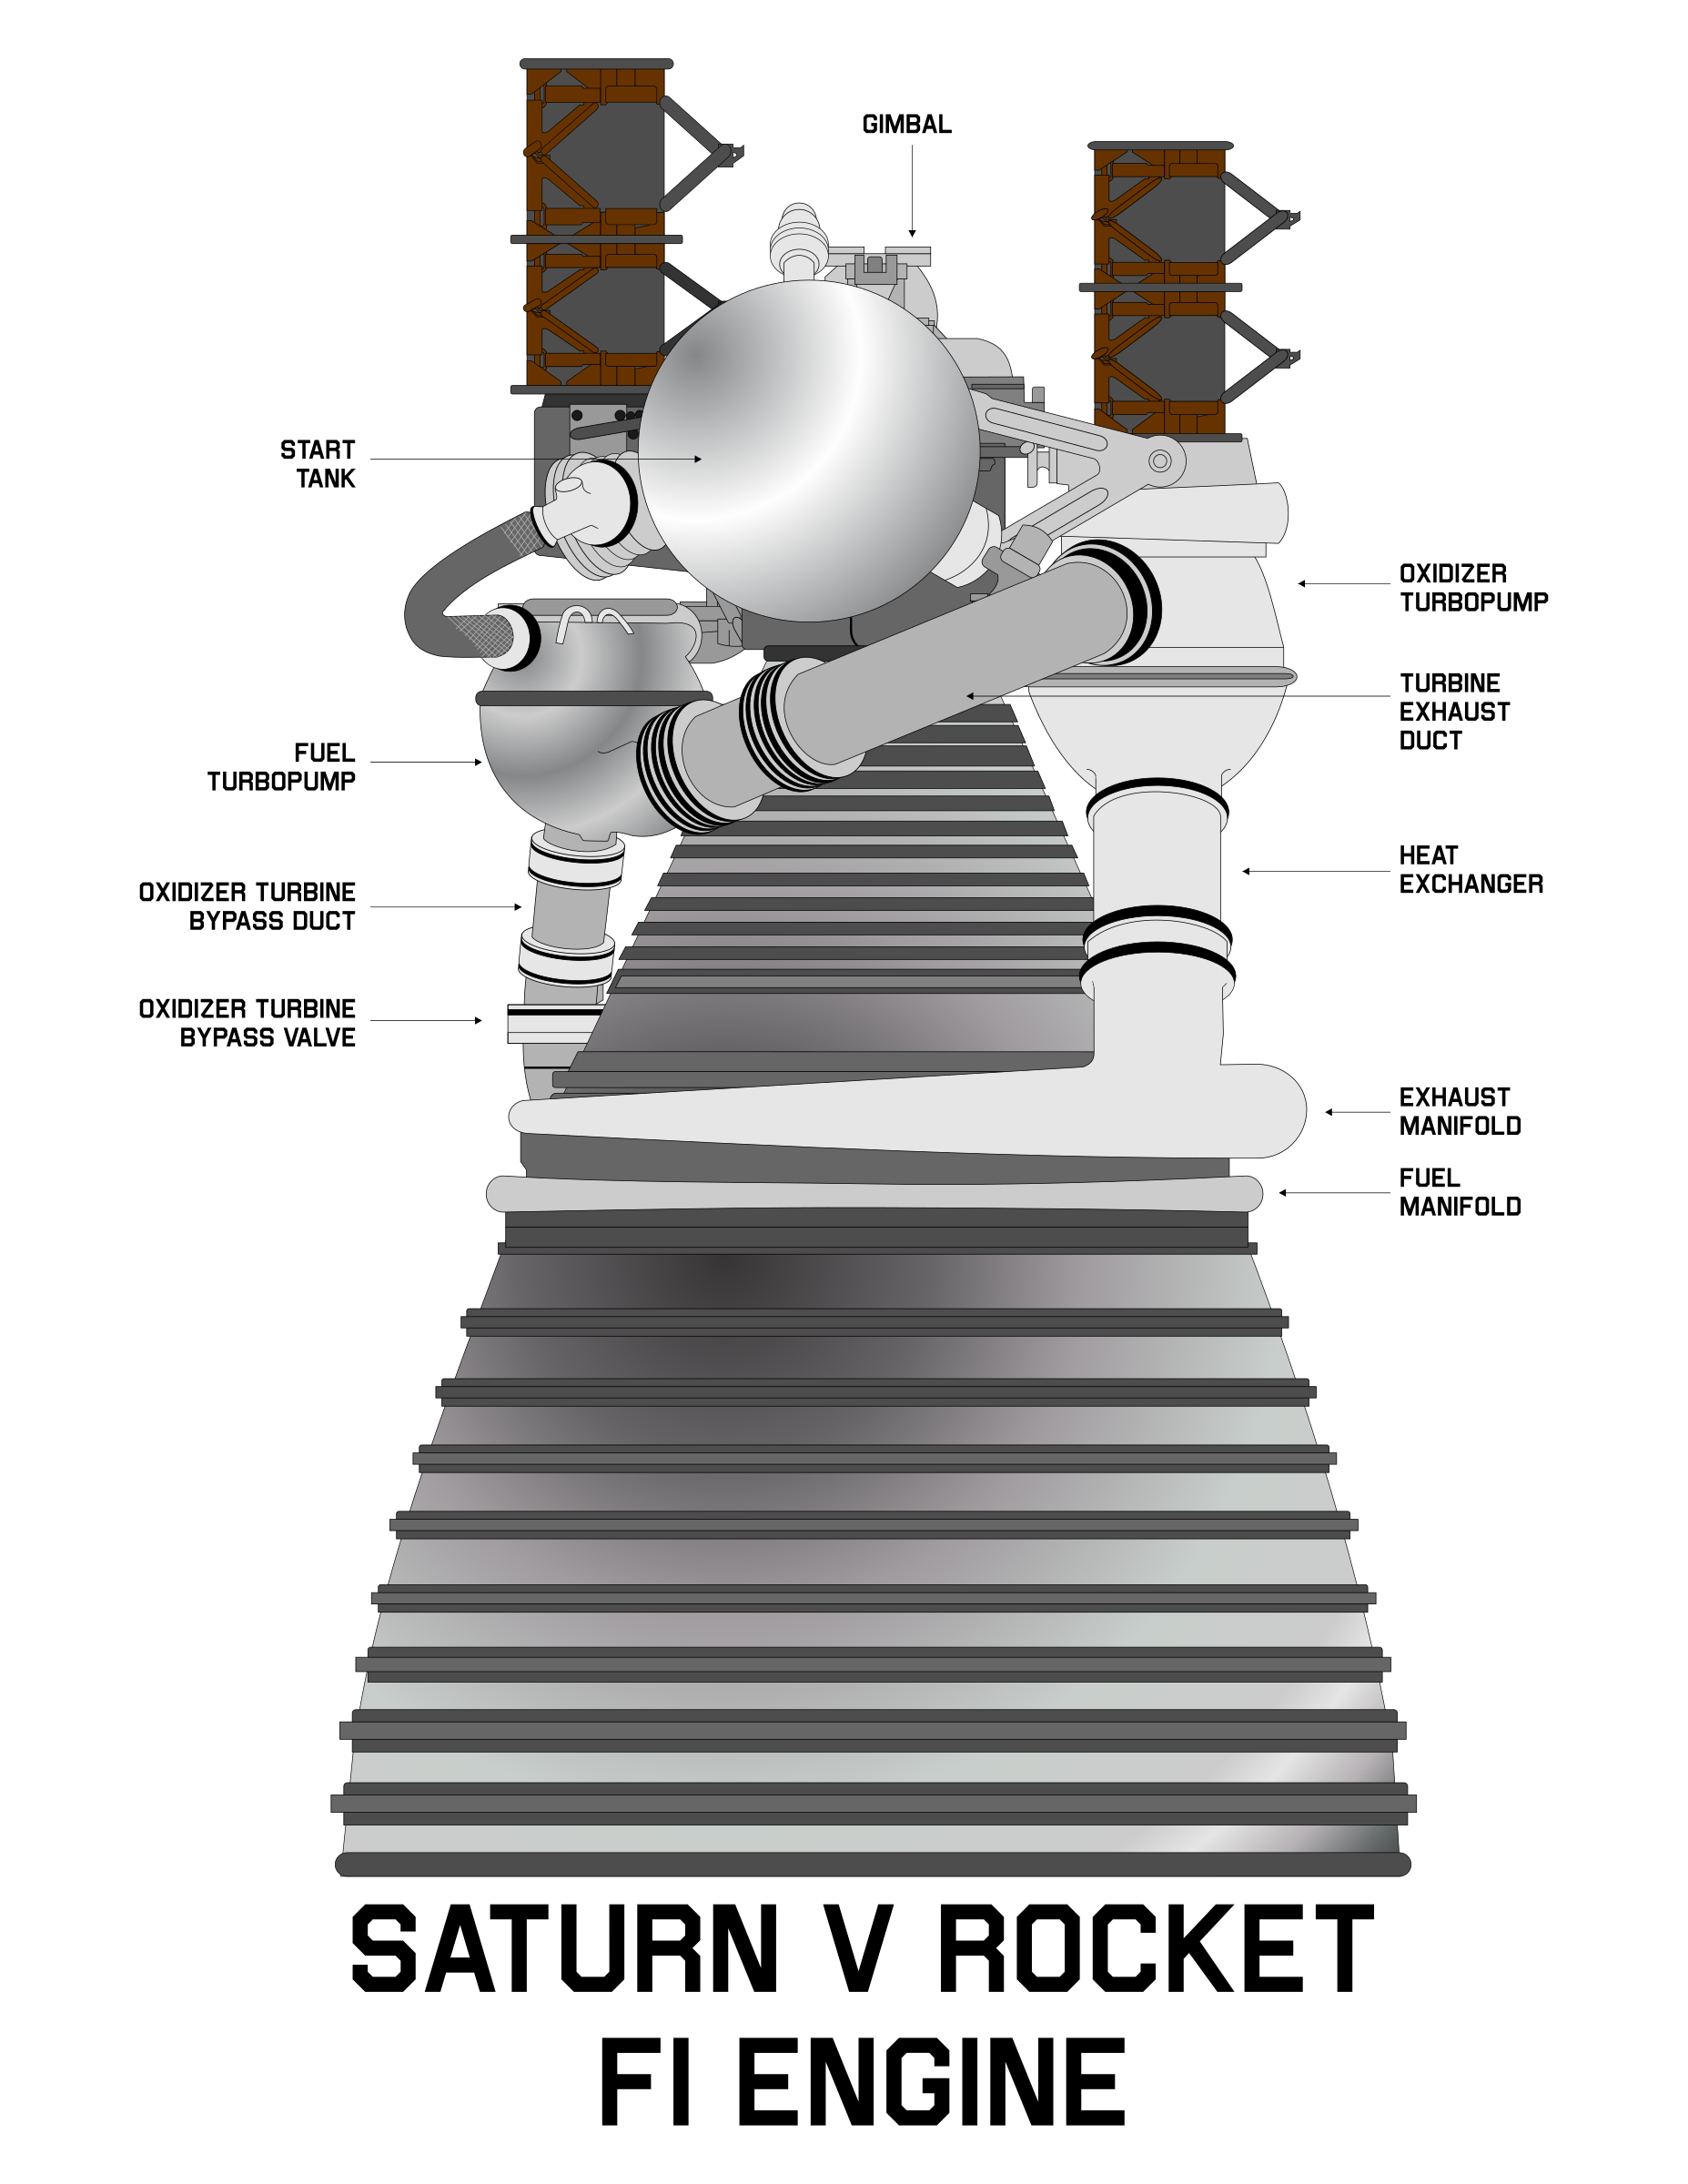 Clipart - ROCKET ENGINE